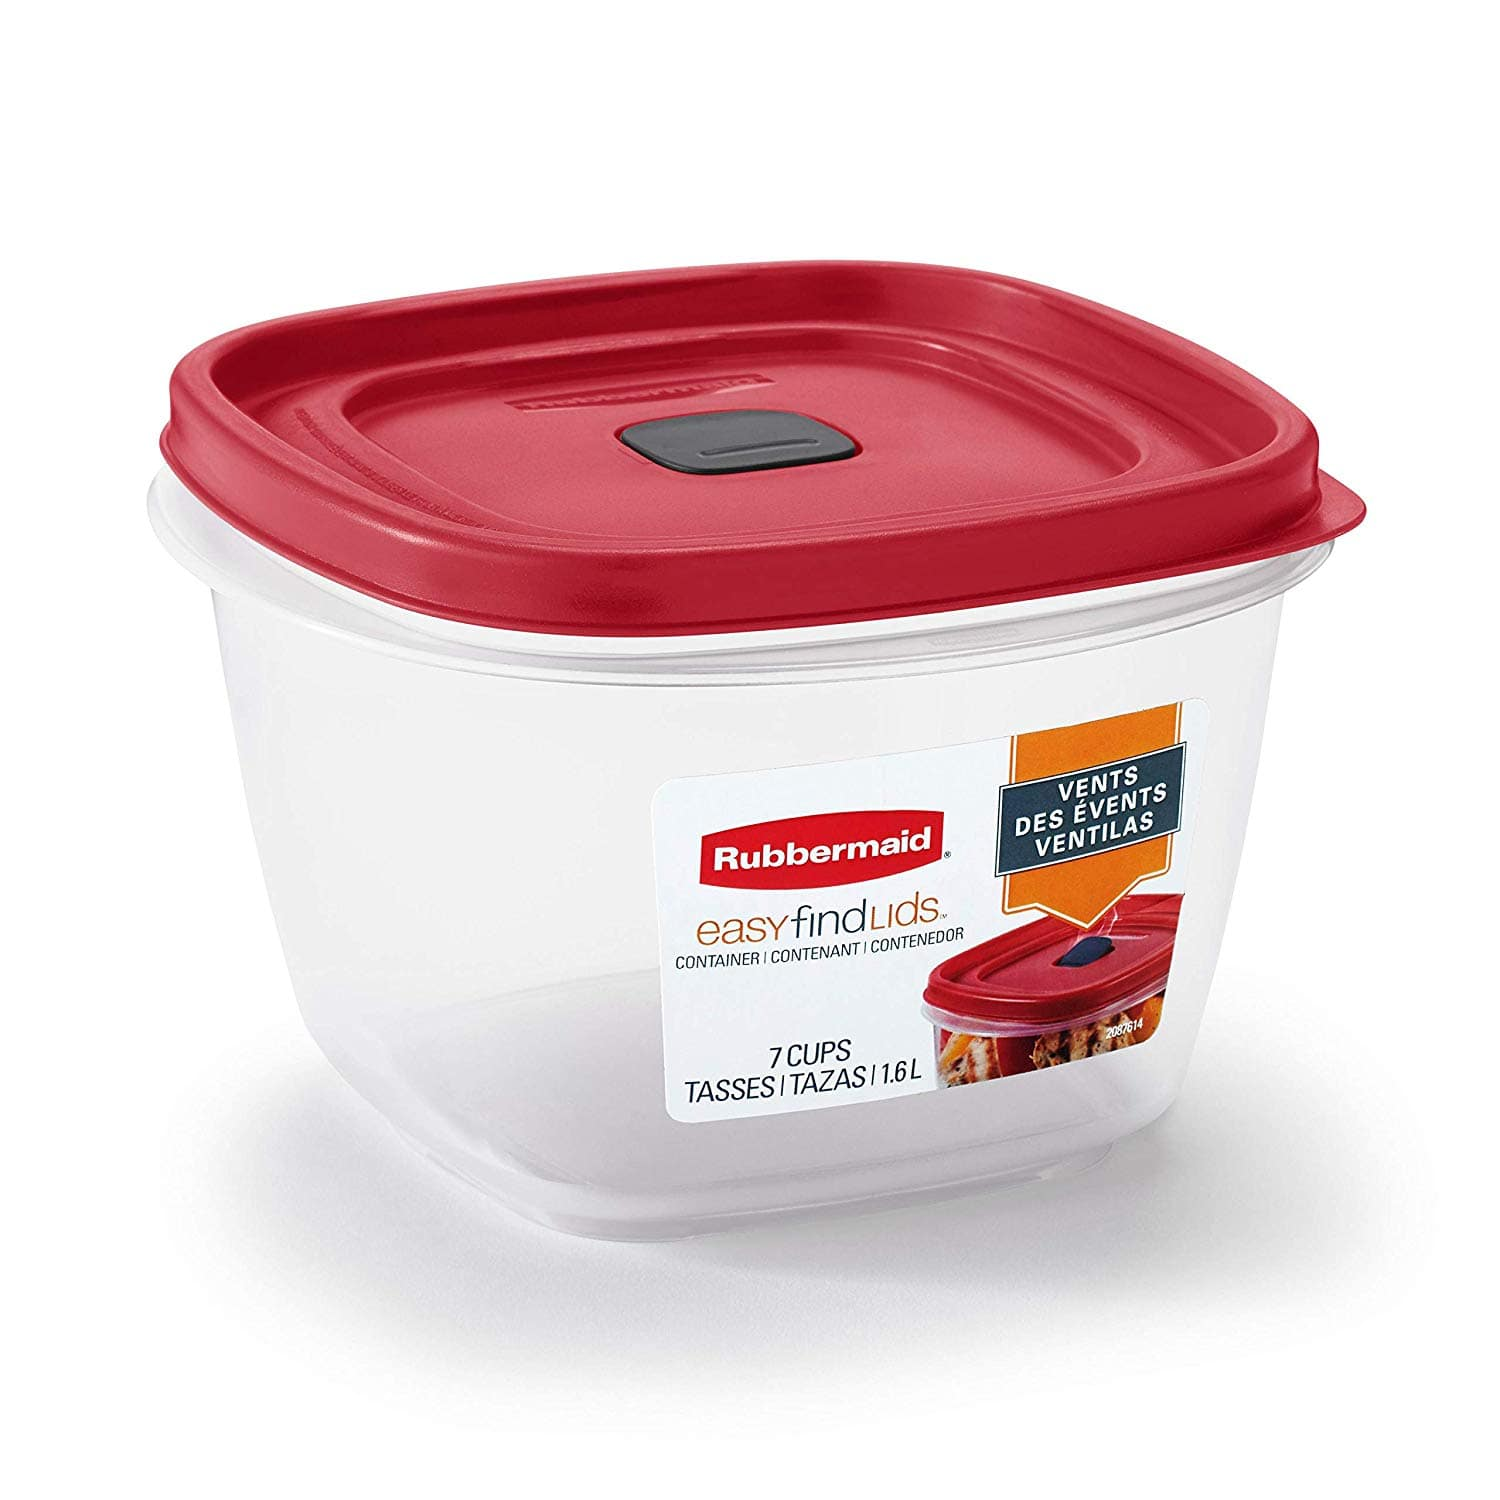 Rubbermaid 2030330 Easy Find Vented Lid Food Storage Containers, 7-Cup - $3